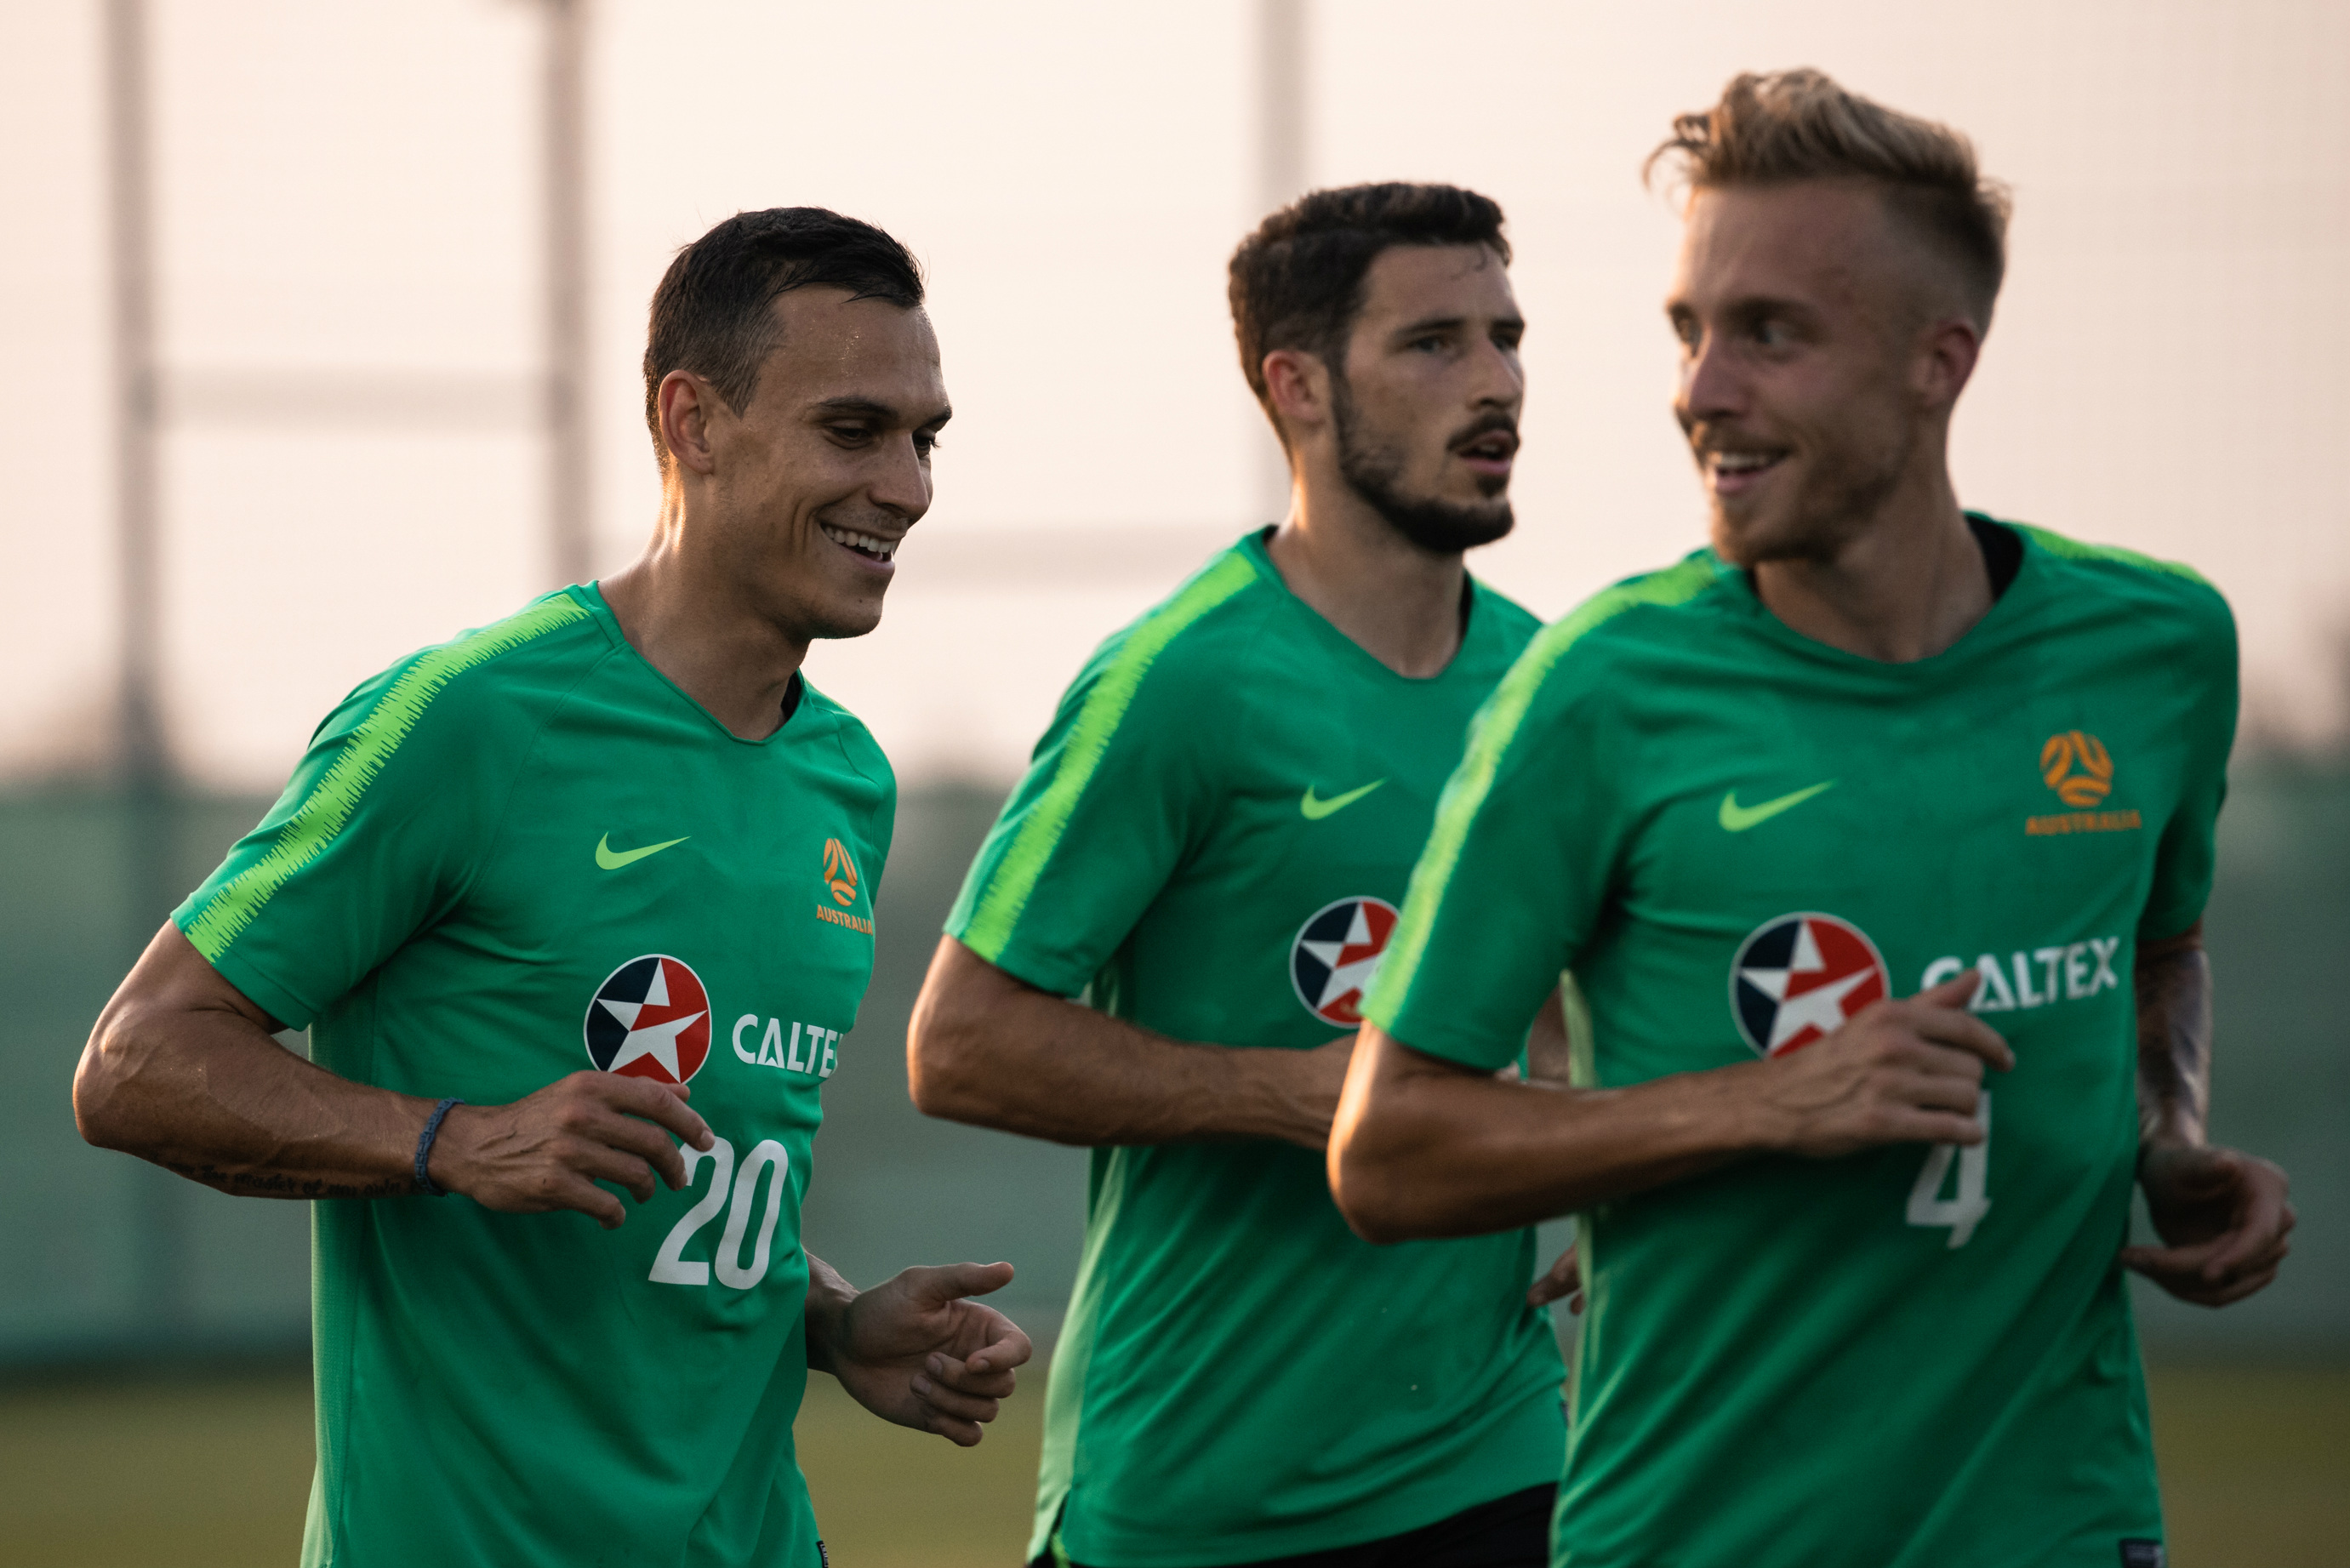 The week-long camp in Dubai is just what the Caltex Socceroos needed, according to Trent Sainsbury